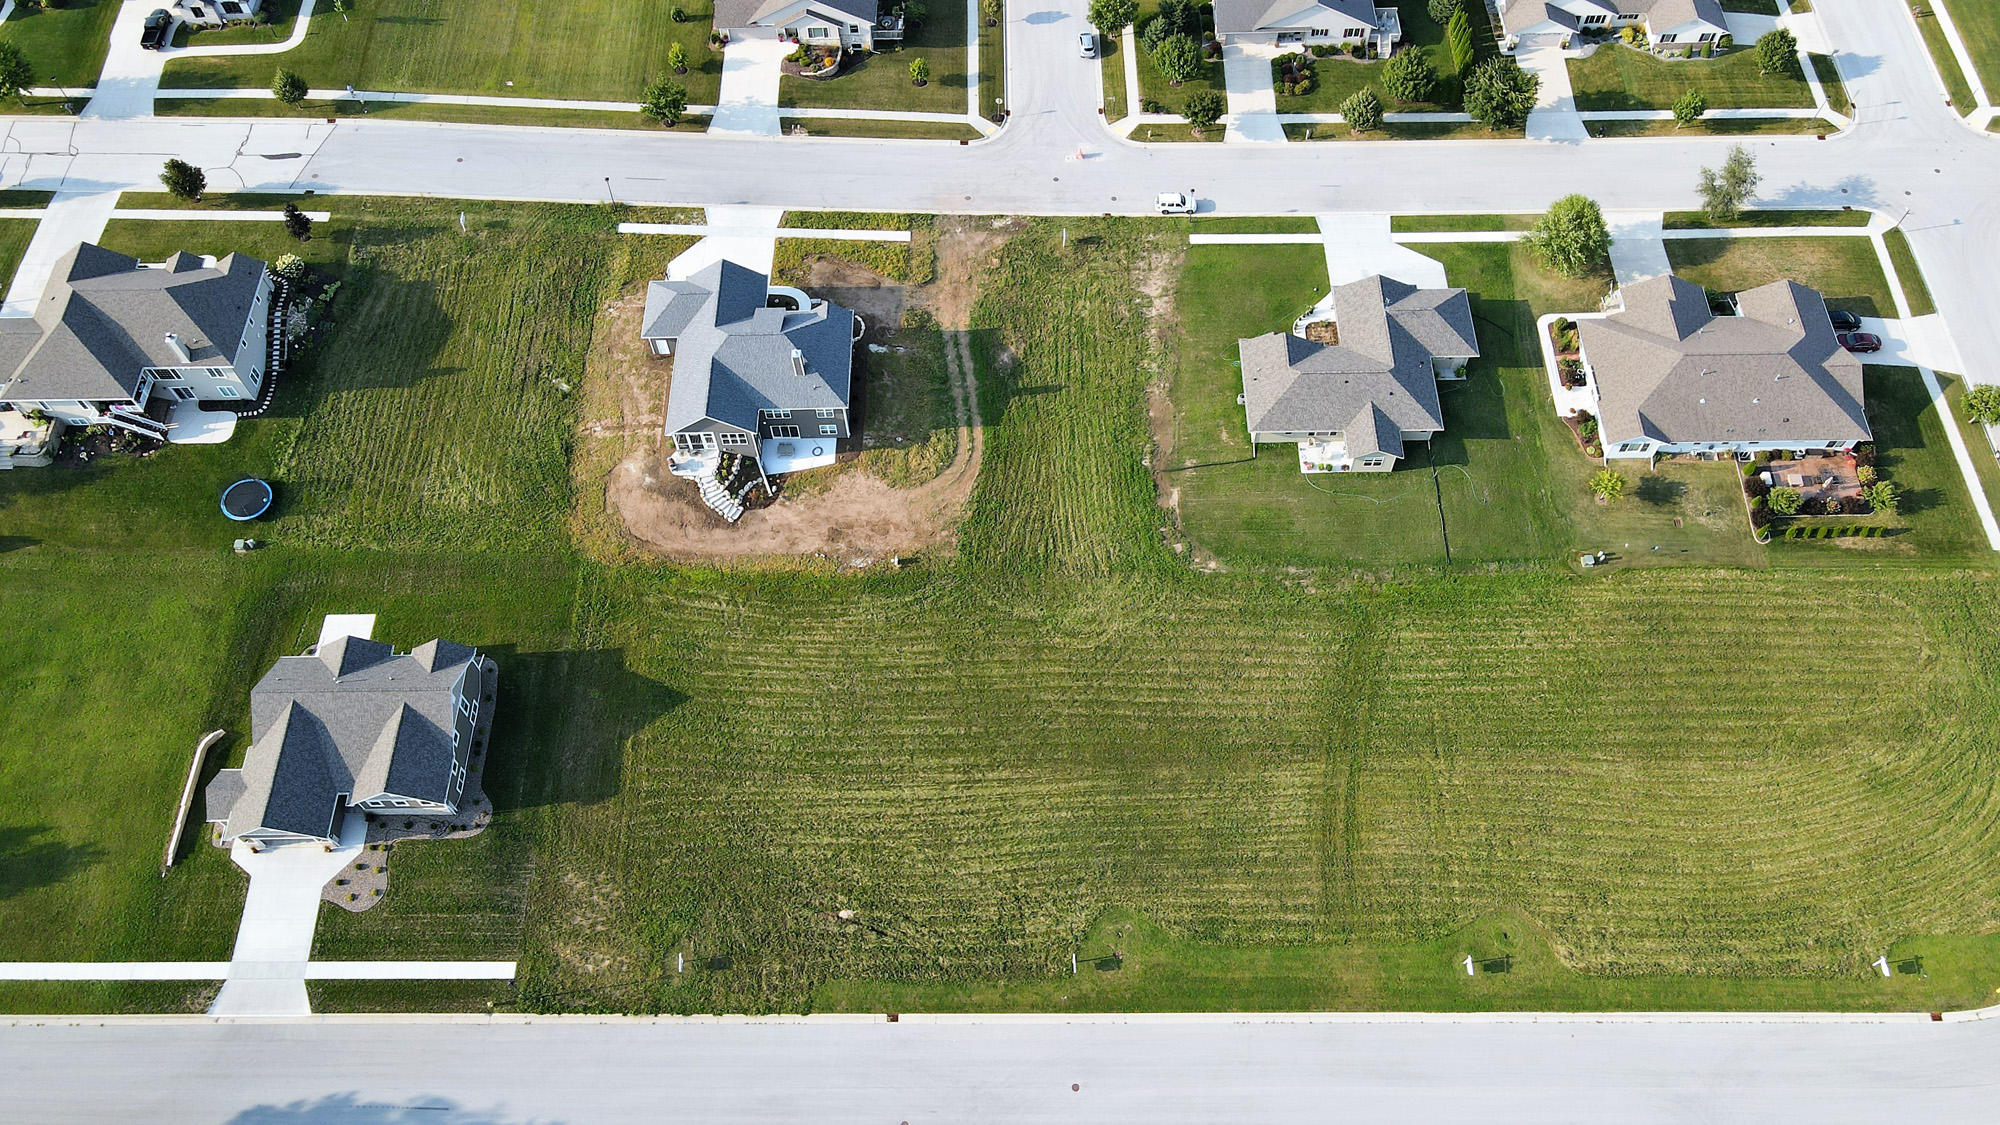 Lot 10 Ryan Ave, Plymouth, Wisconsin 53073, ,Vacant Land,For Sale,Ryan Ave,1679407